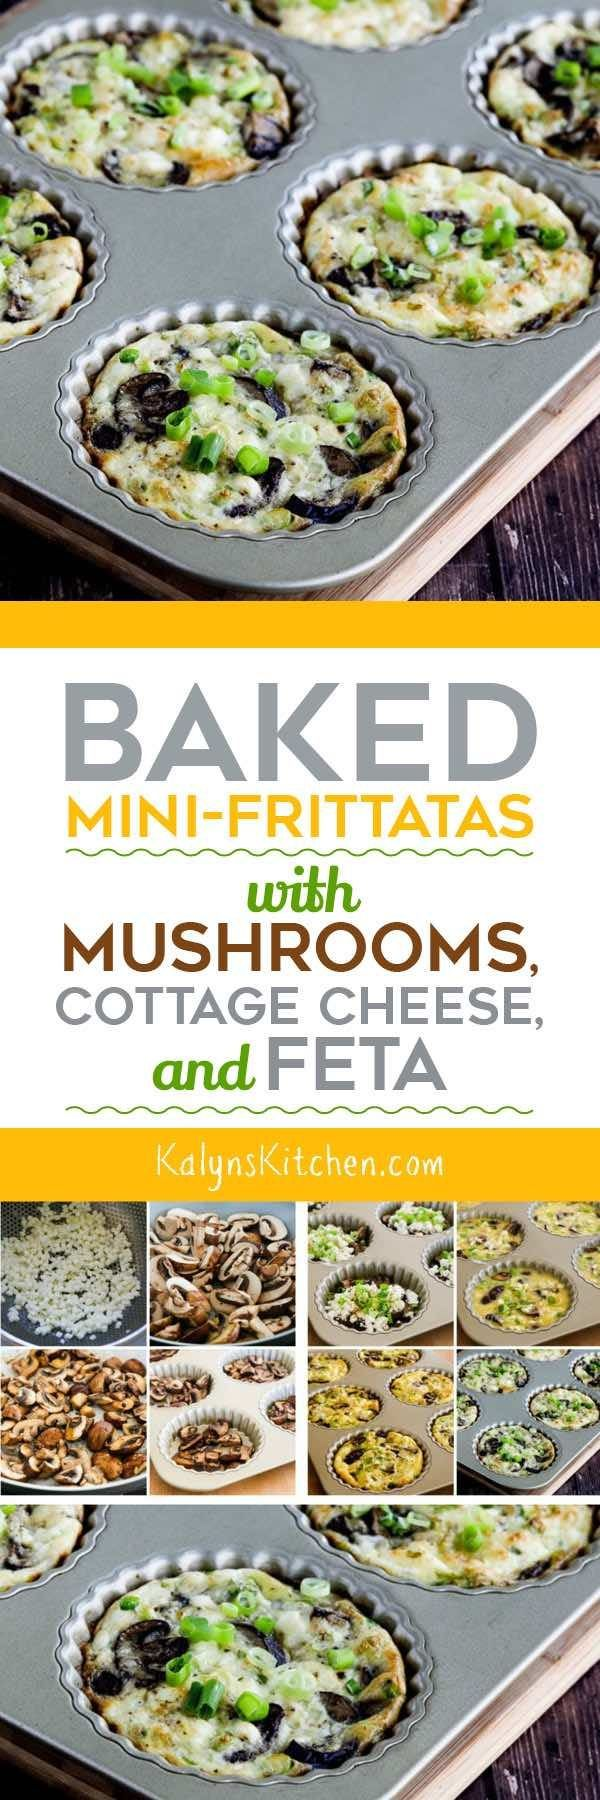 Baked Mini-Frittatas with Mushrooms, Cottage Cheese, and Feta found on KalynsKitchen.com